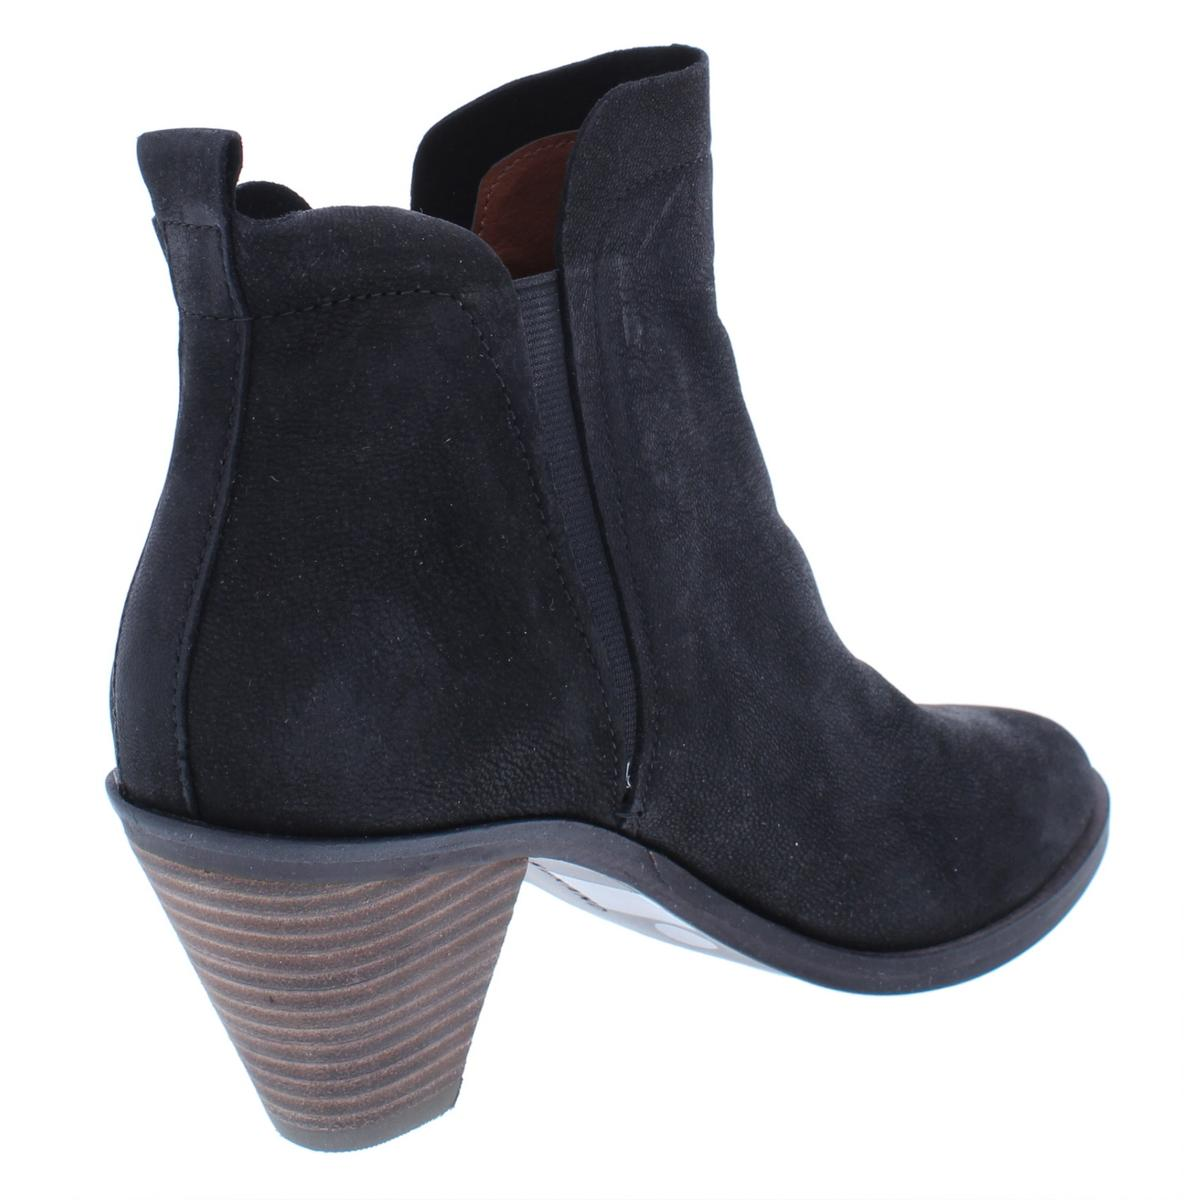 Lucky Brand Womens Jana Leather Stacked Heel Ankle Booties Shoes BHFO 6706